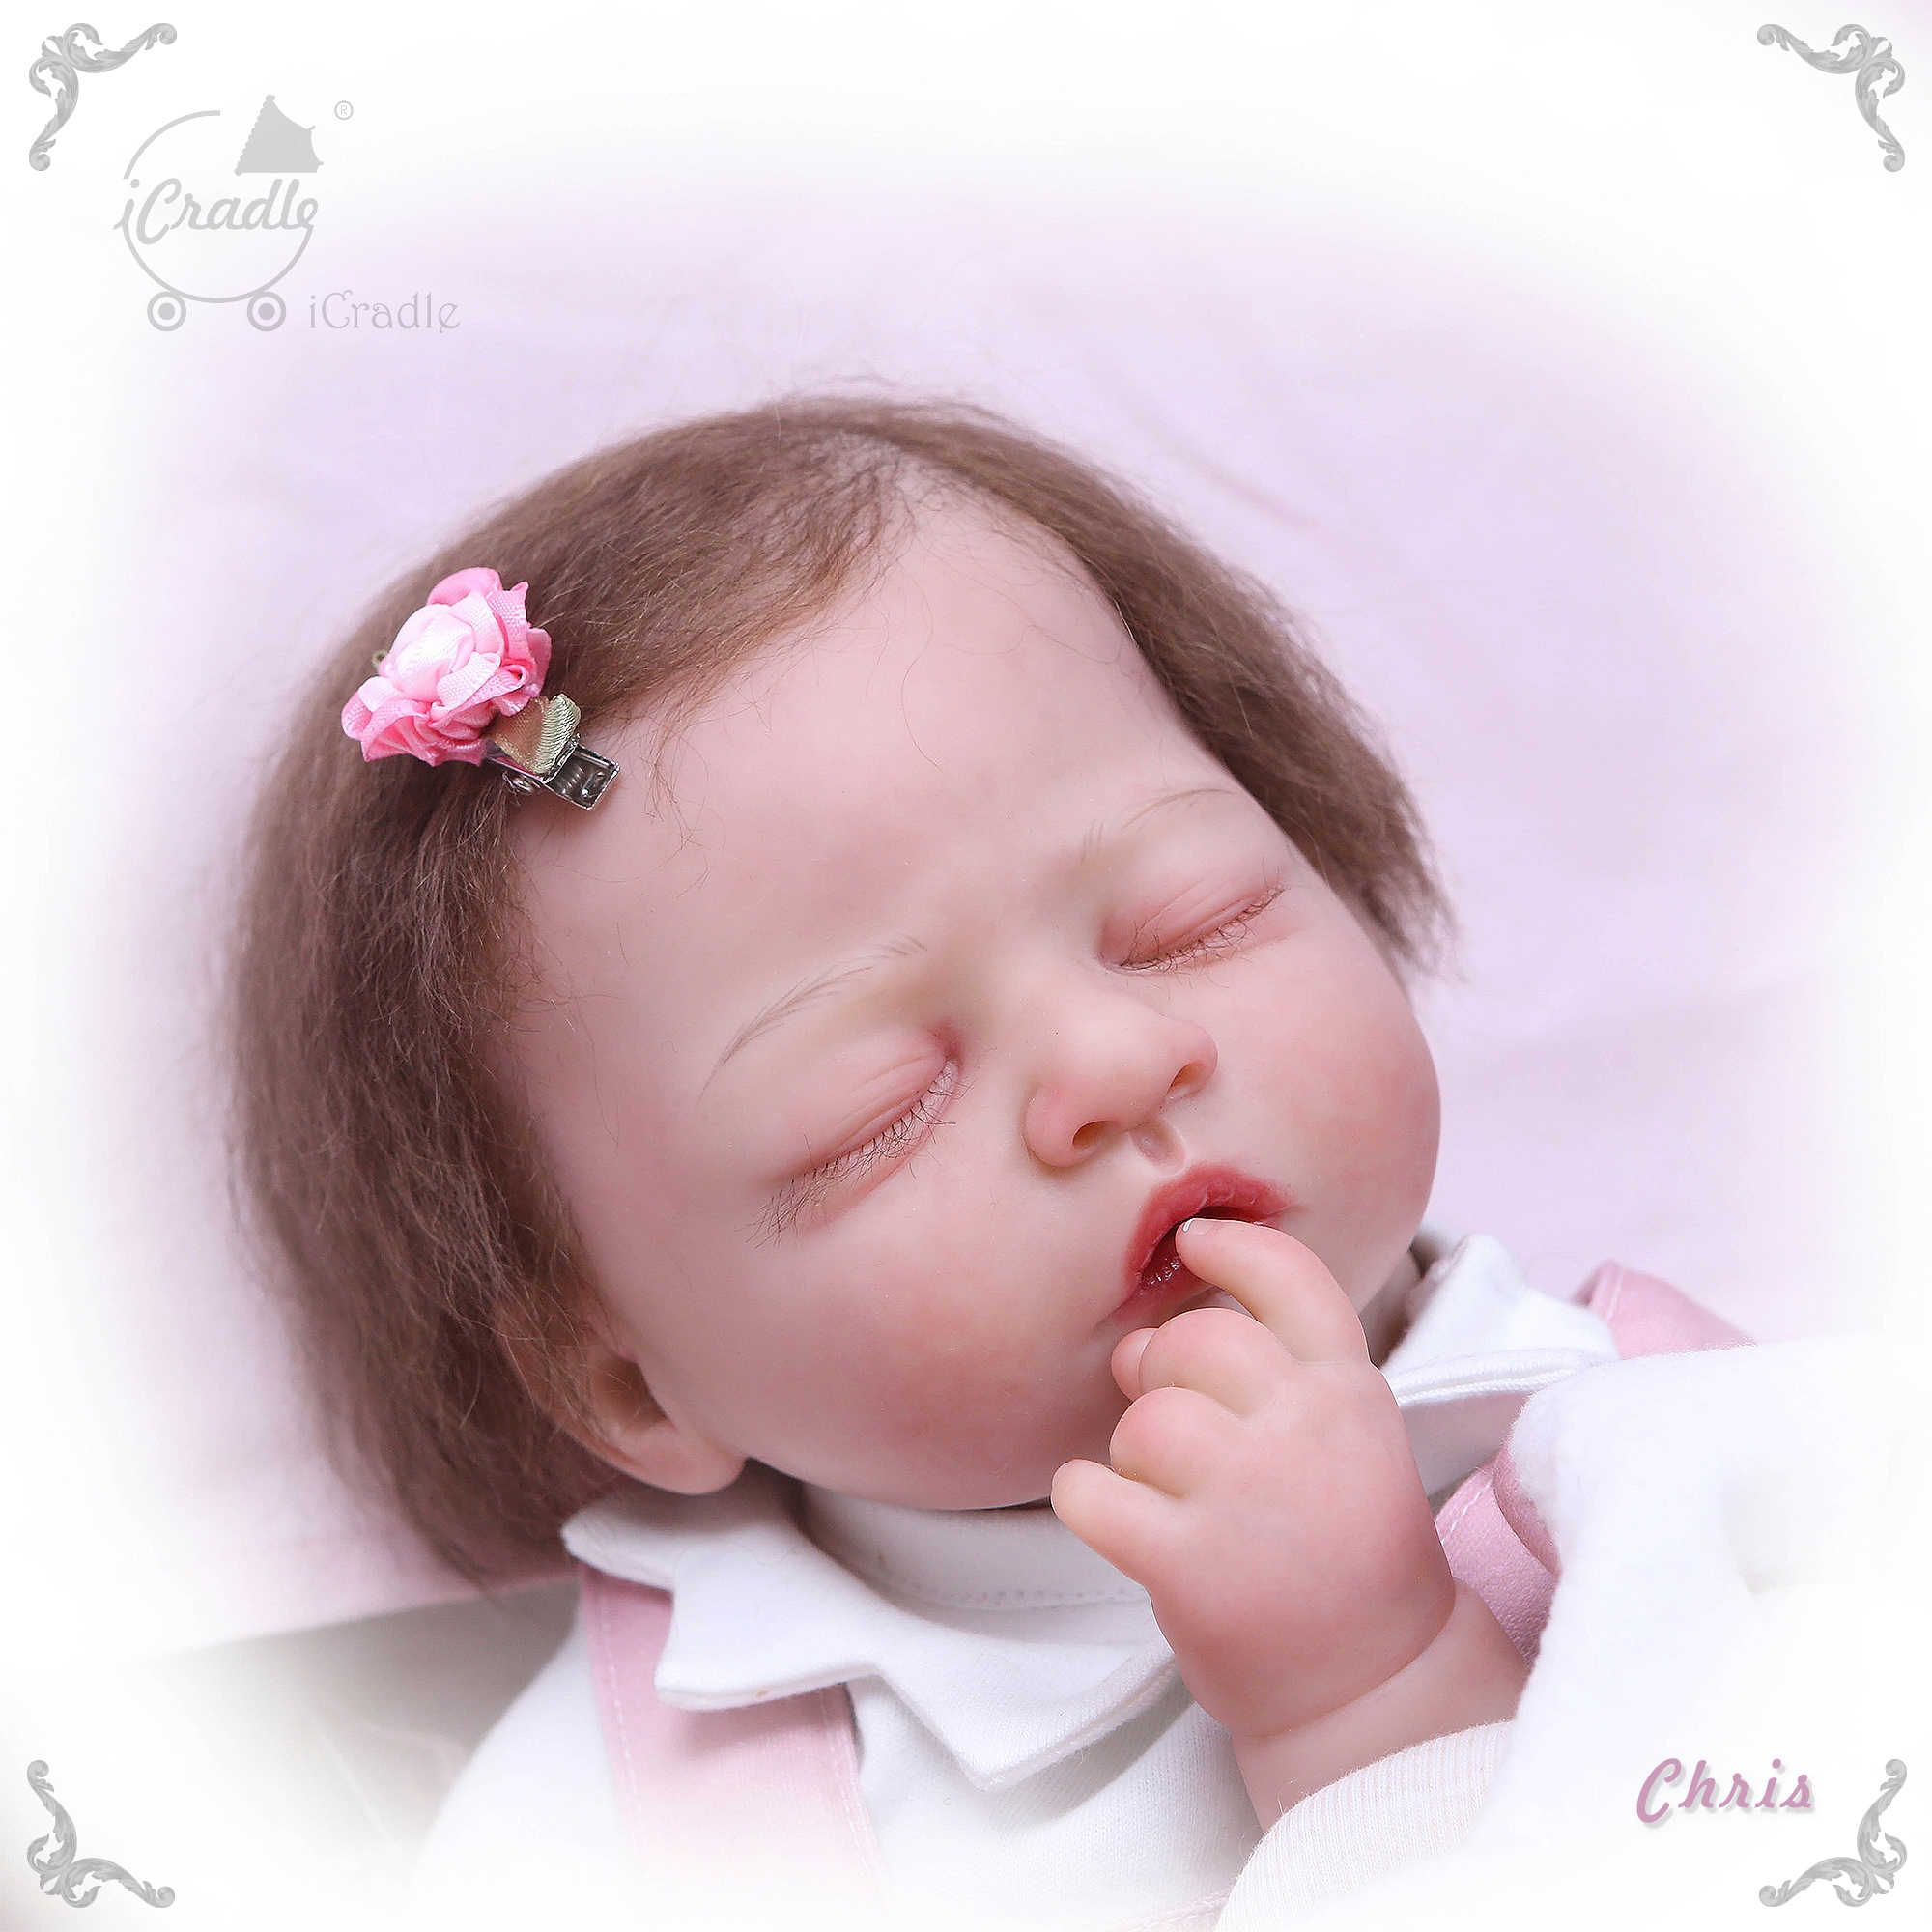 Bebes Reborn Doll Boutique Silicone Reborn Baby Doll 50cm Icradle Series Collection Newborn Baby Dolls Gift Handmade Aliexpress